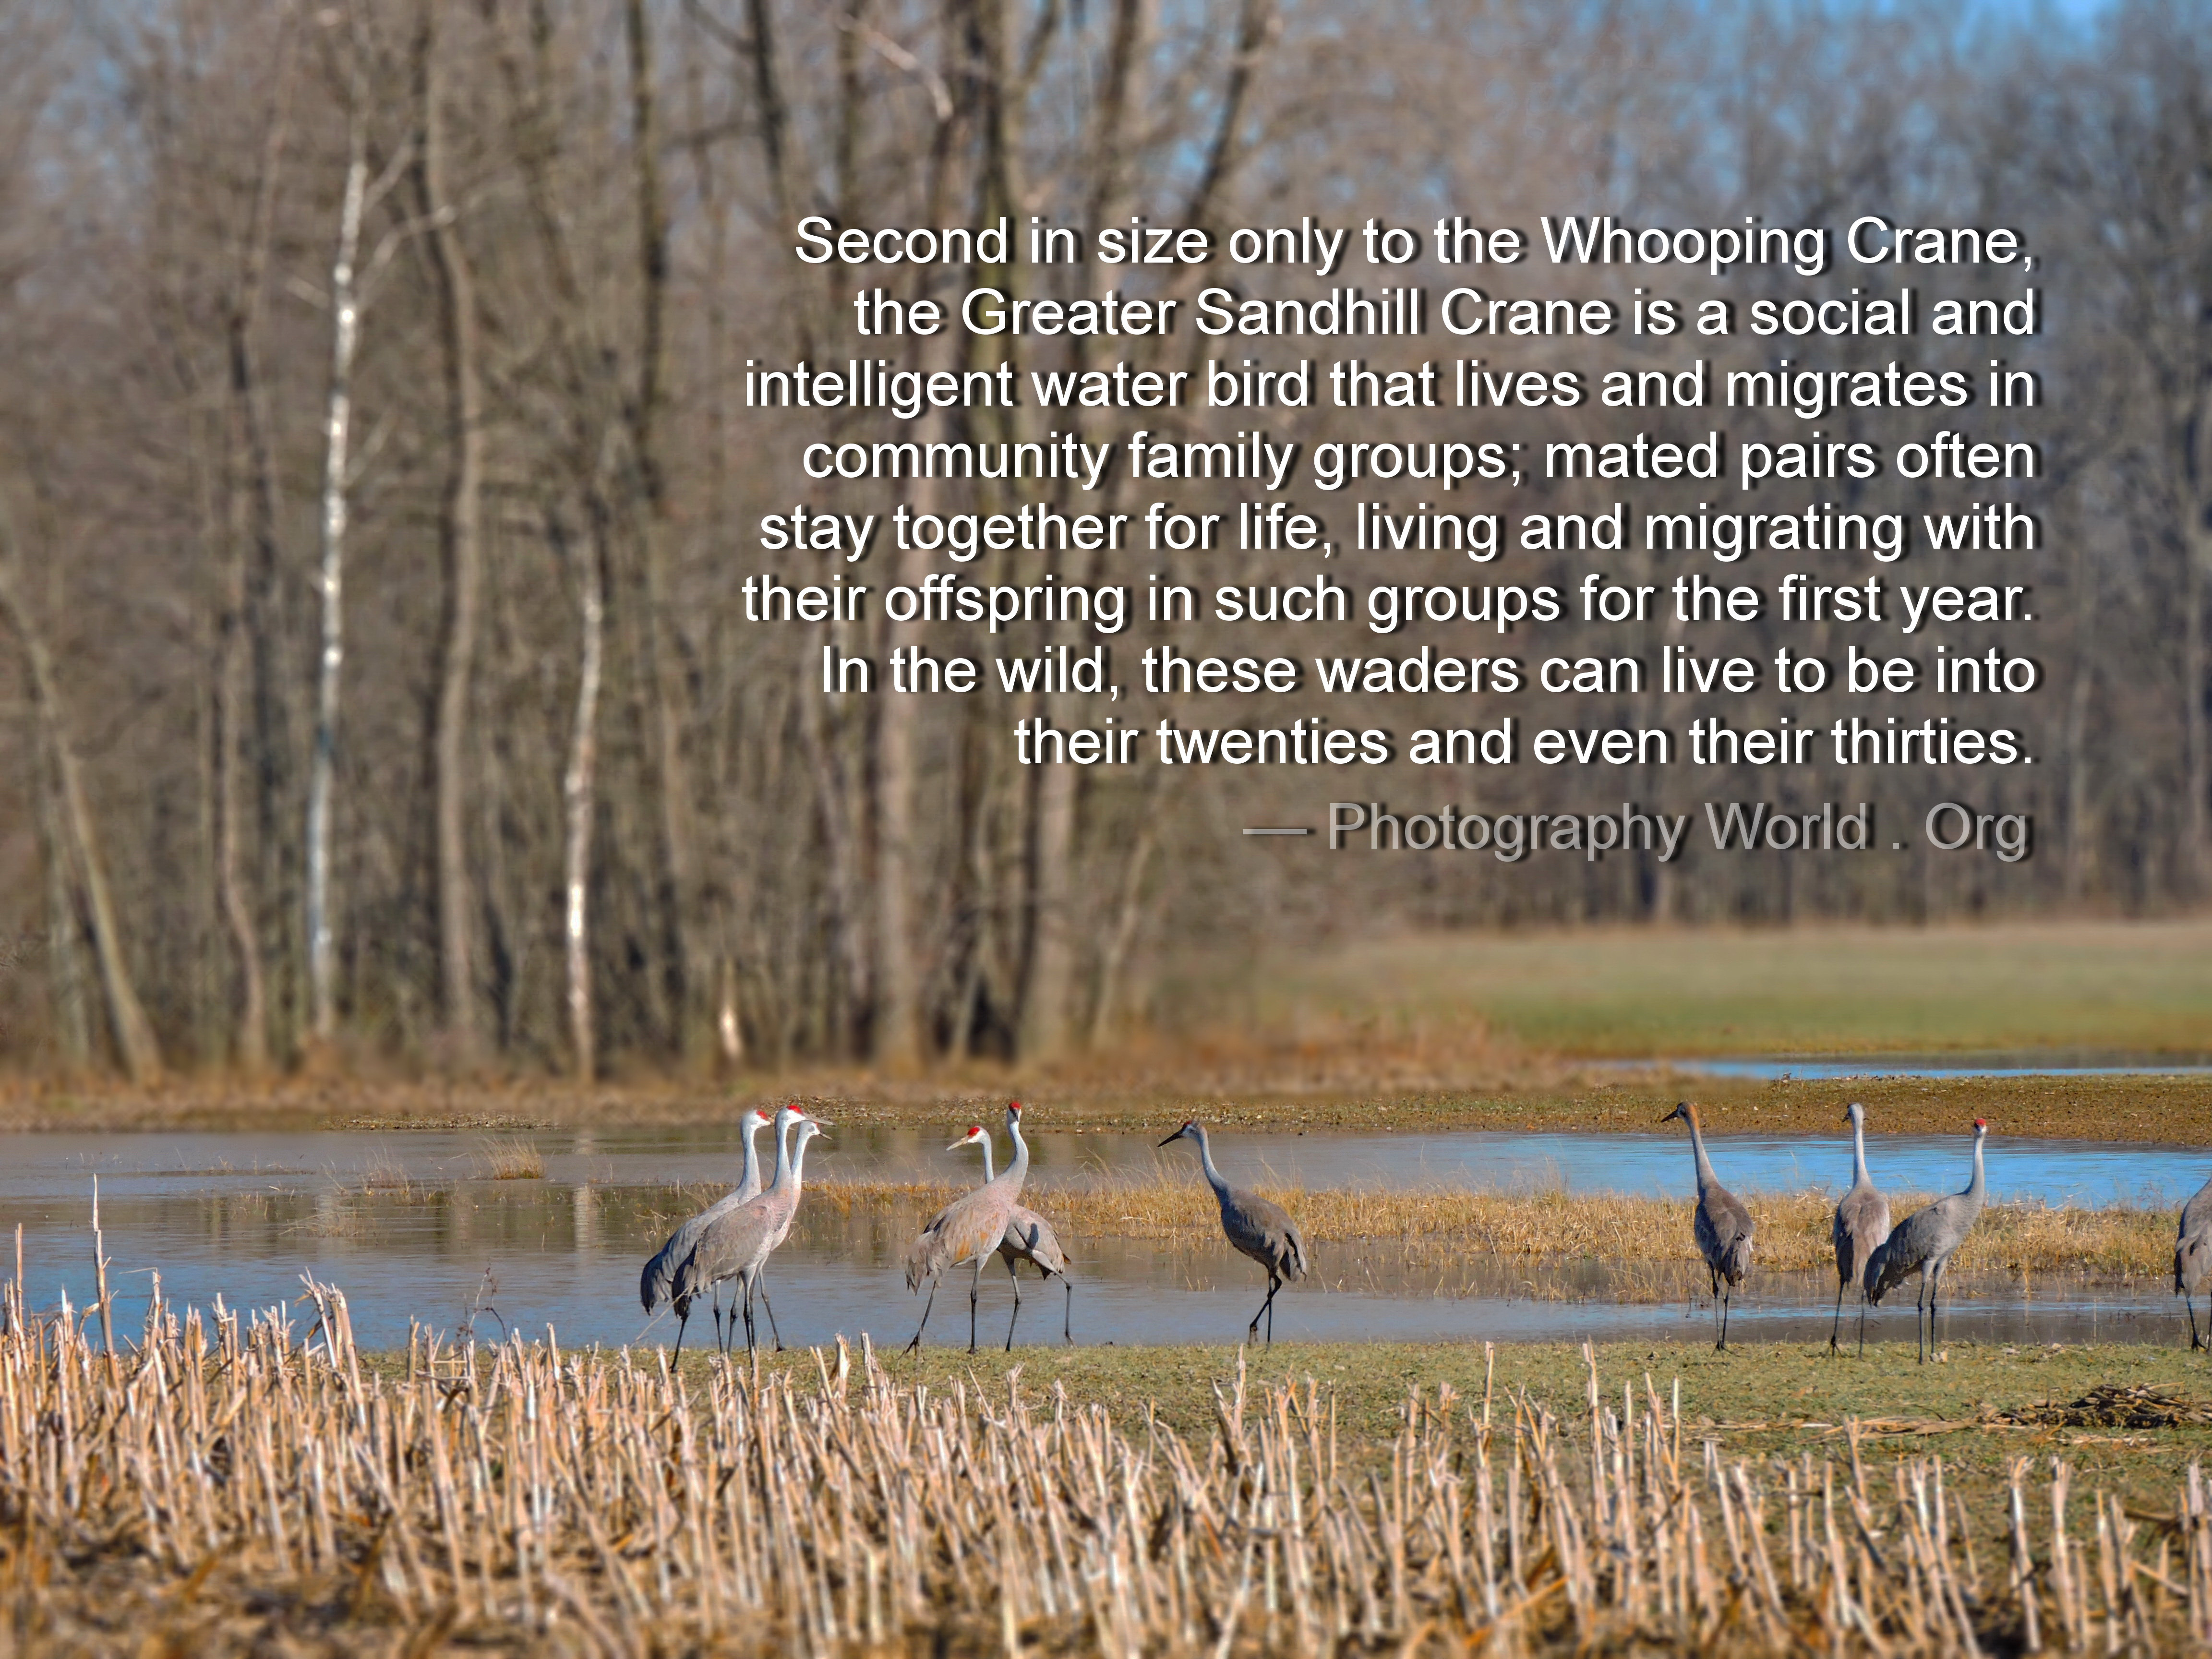 Family Group of Sandhill Cranes. Photograph by Mina Thevenin @ https://photographyworld.org/animals/water-birds-of-north-america/